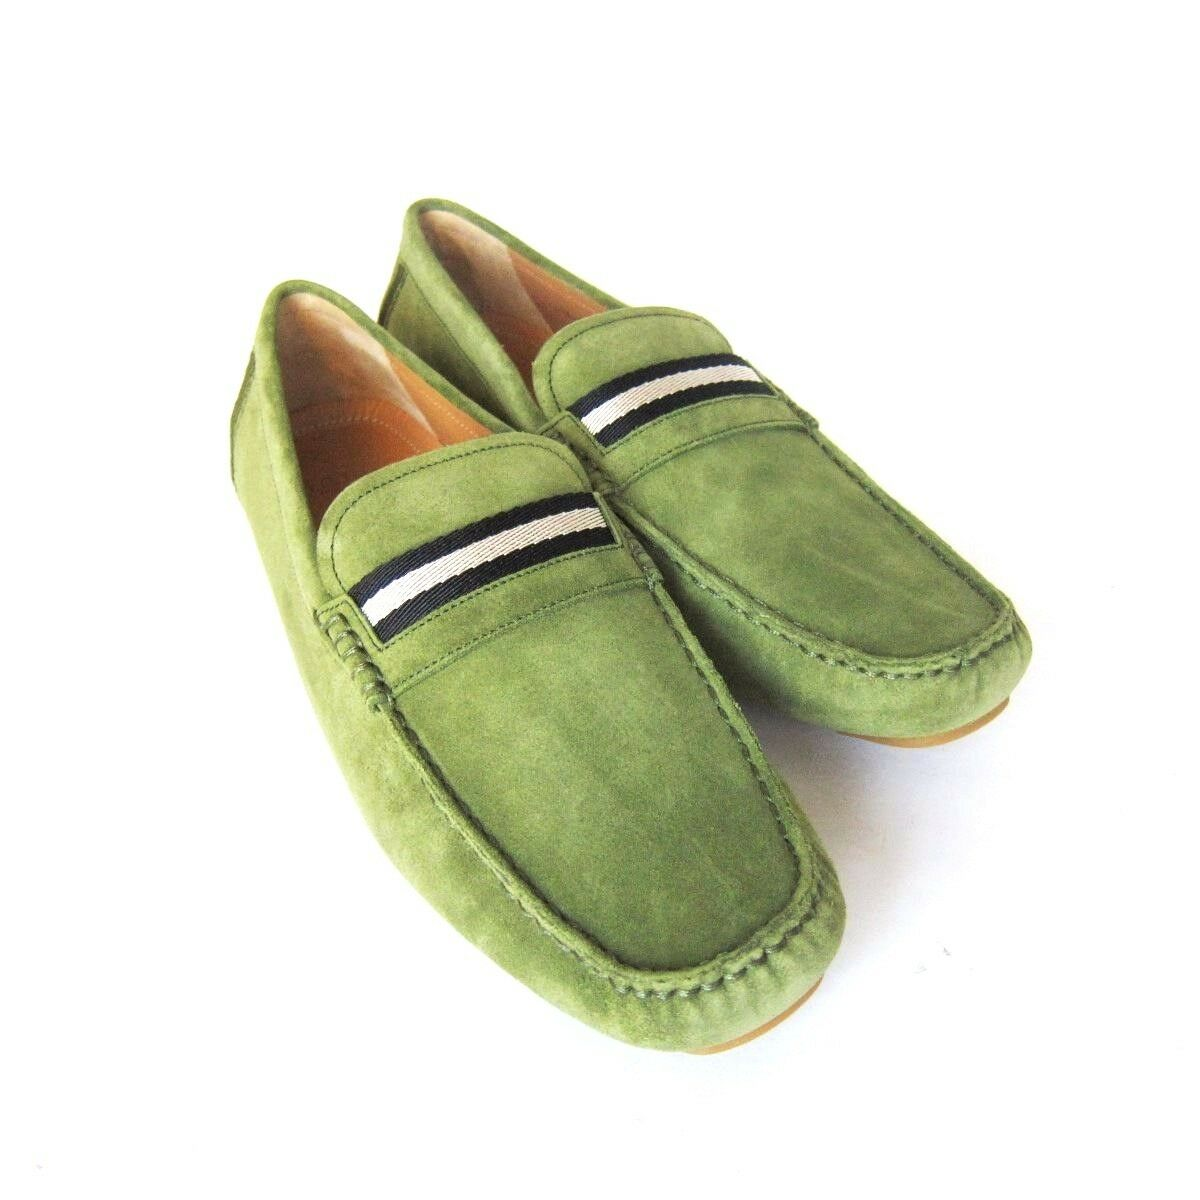 S-1468935 New Bally Wabler Moss Green Suede Driver shoes Sz US 11.5D marked 10.5E